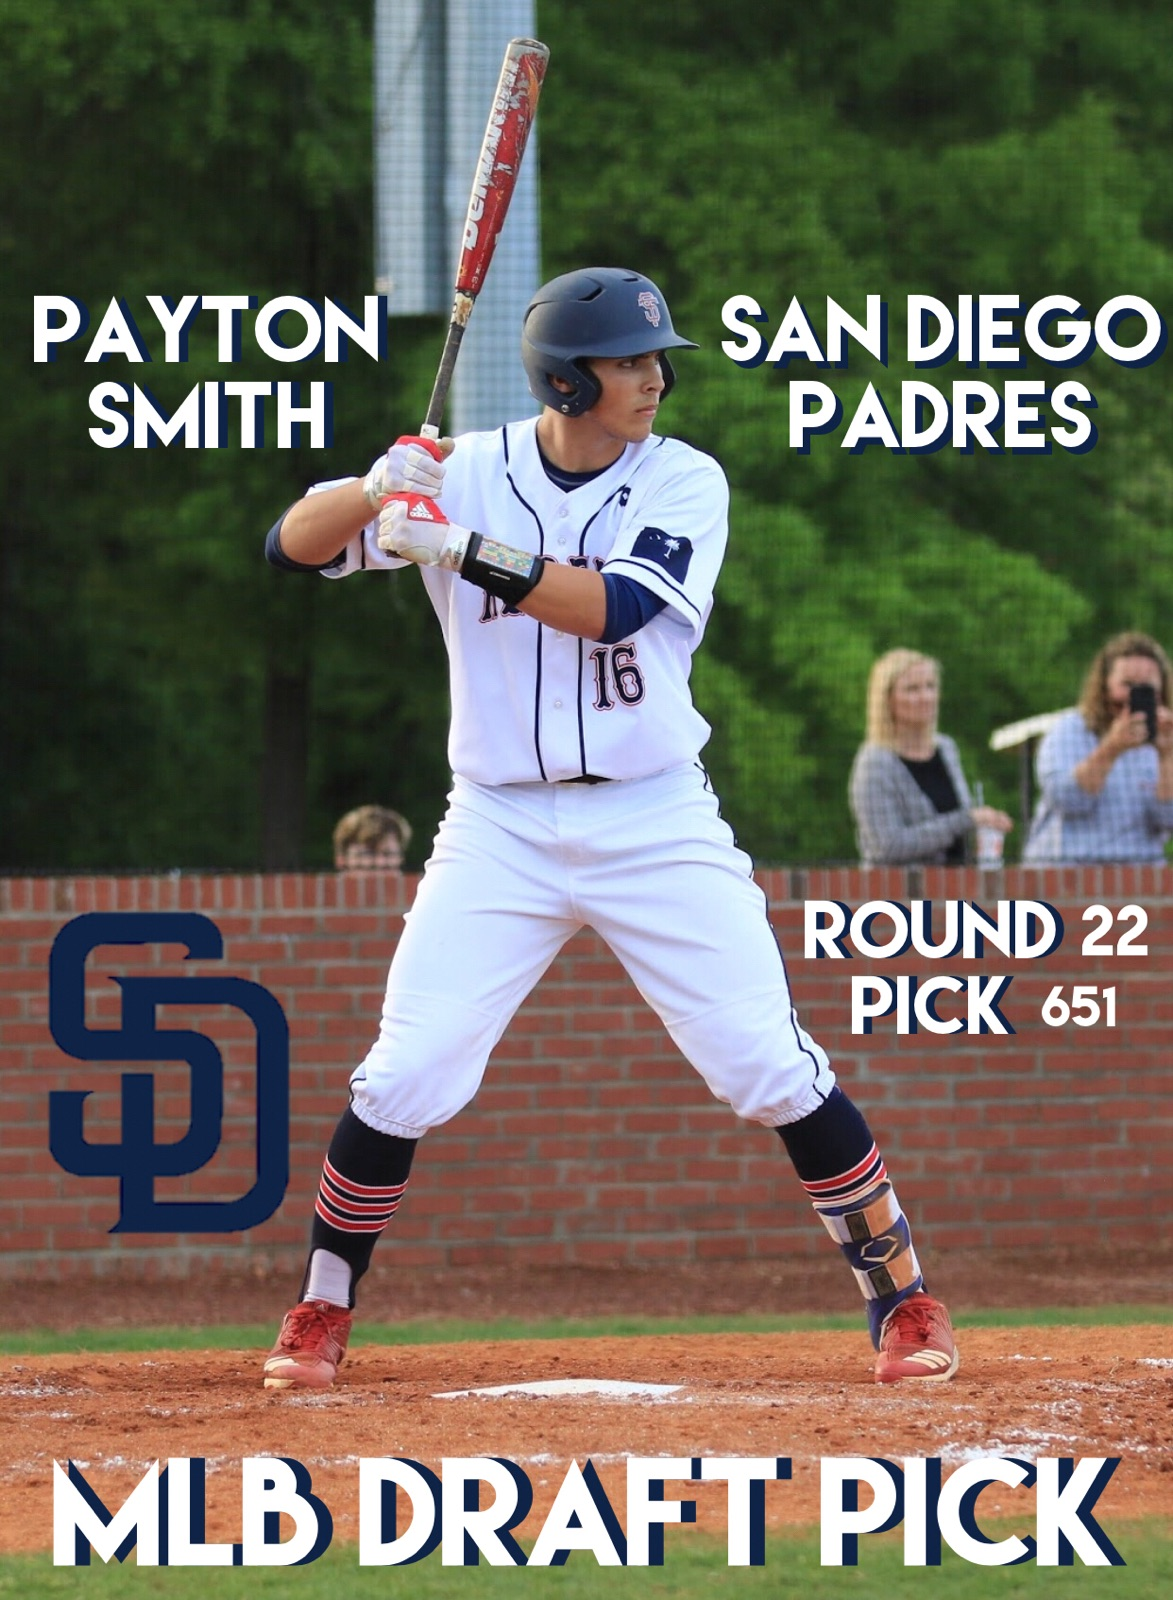 Payton Smith Drafted by the San Diego Padres in 22nd Round